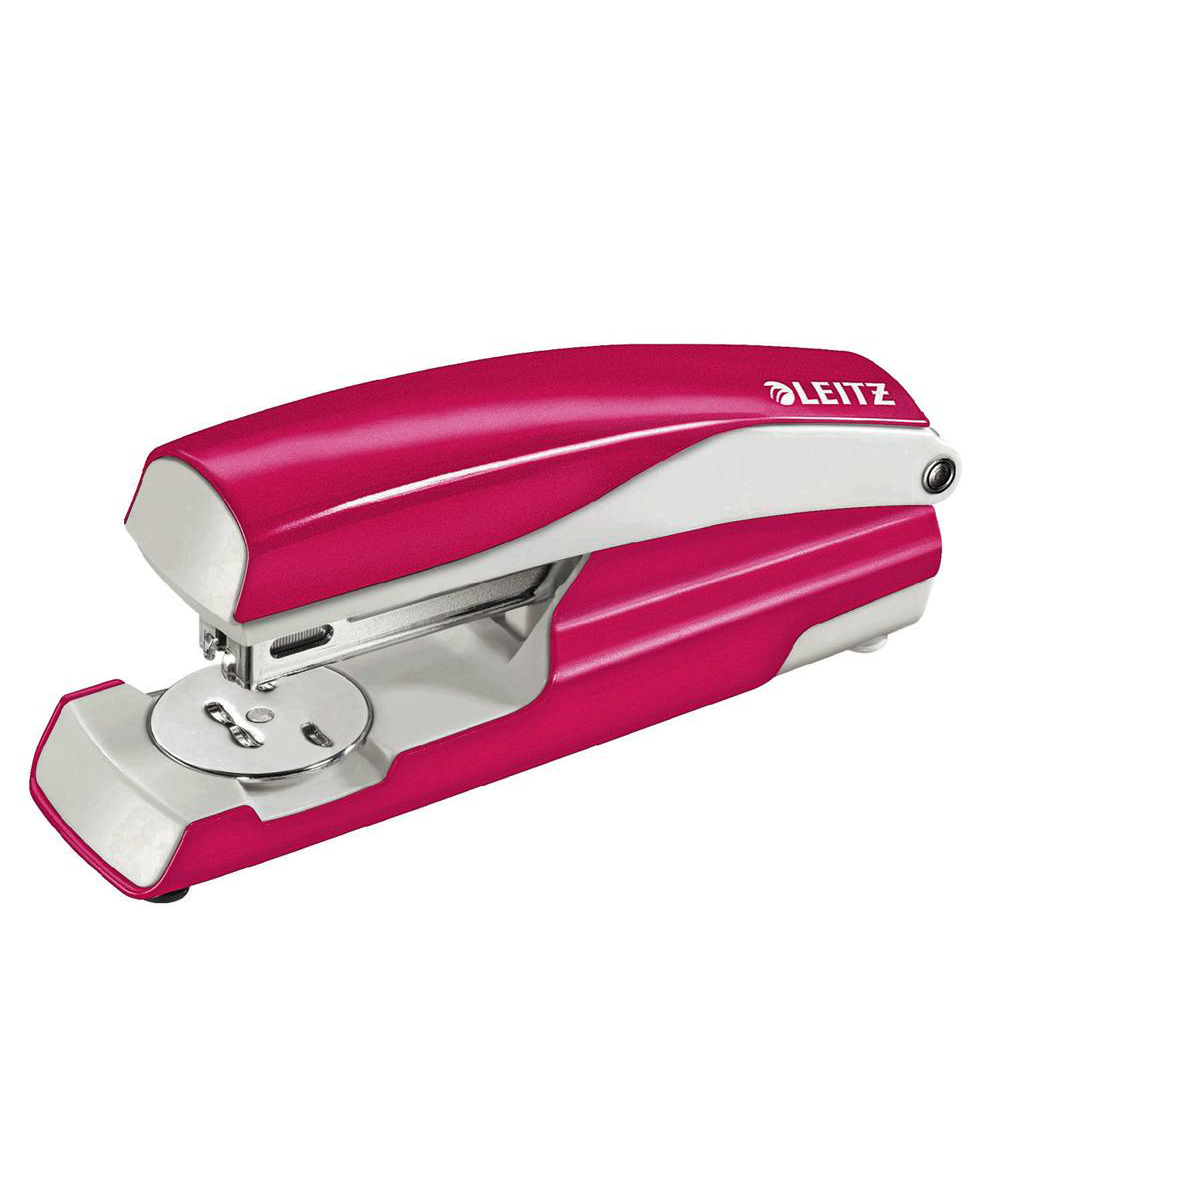 Leitz NeXXt WOW Stapler 3mm 30 Sheet Pink Ref 55021023L [REDEMPTION]